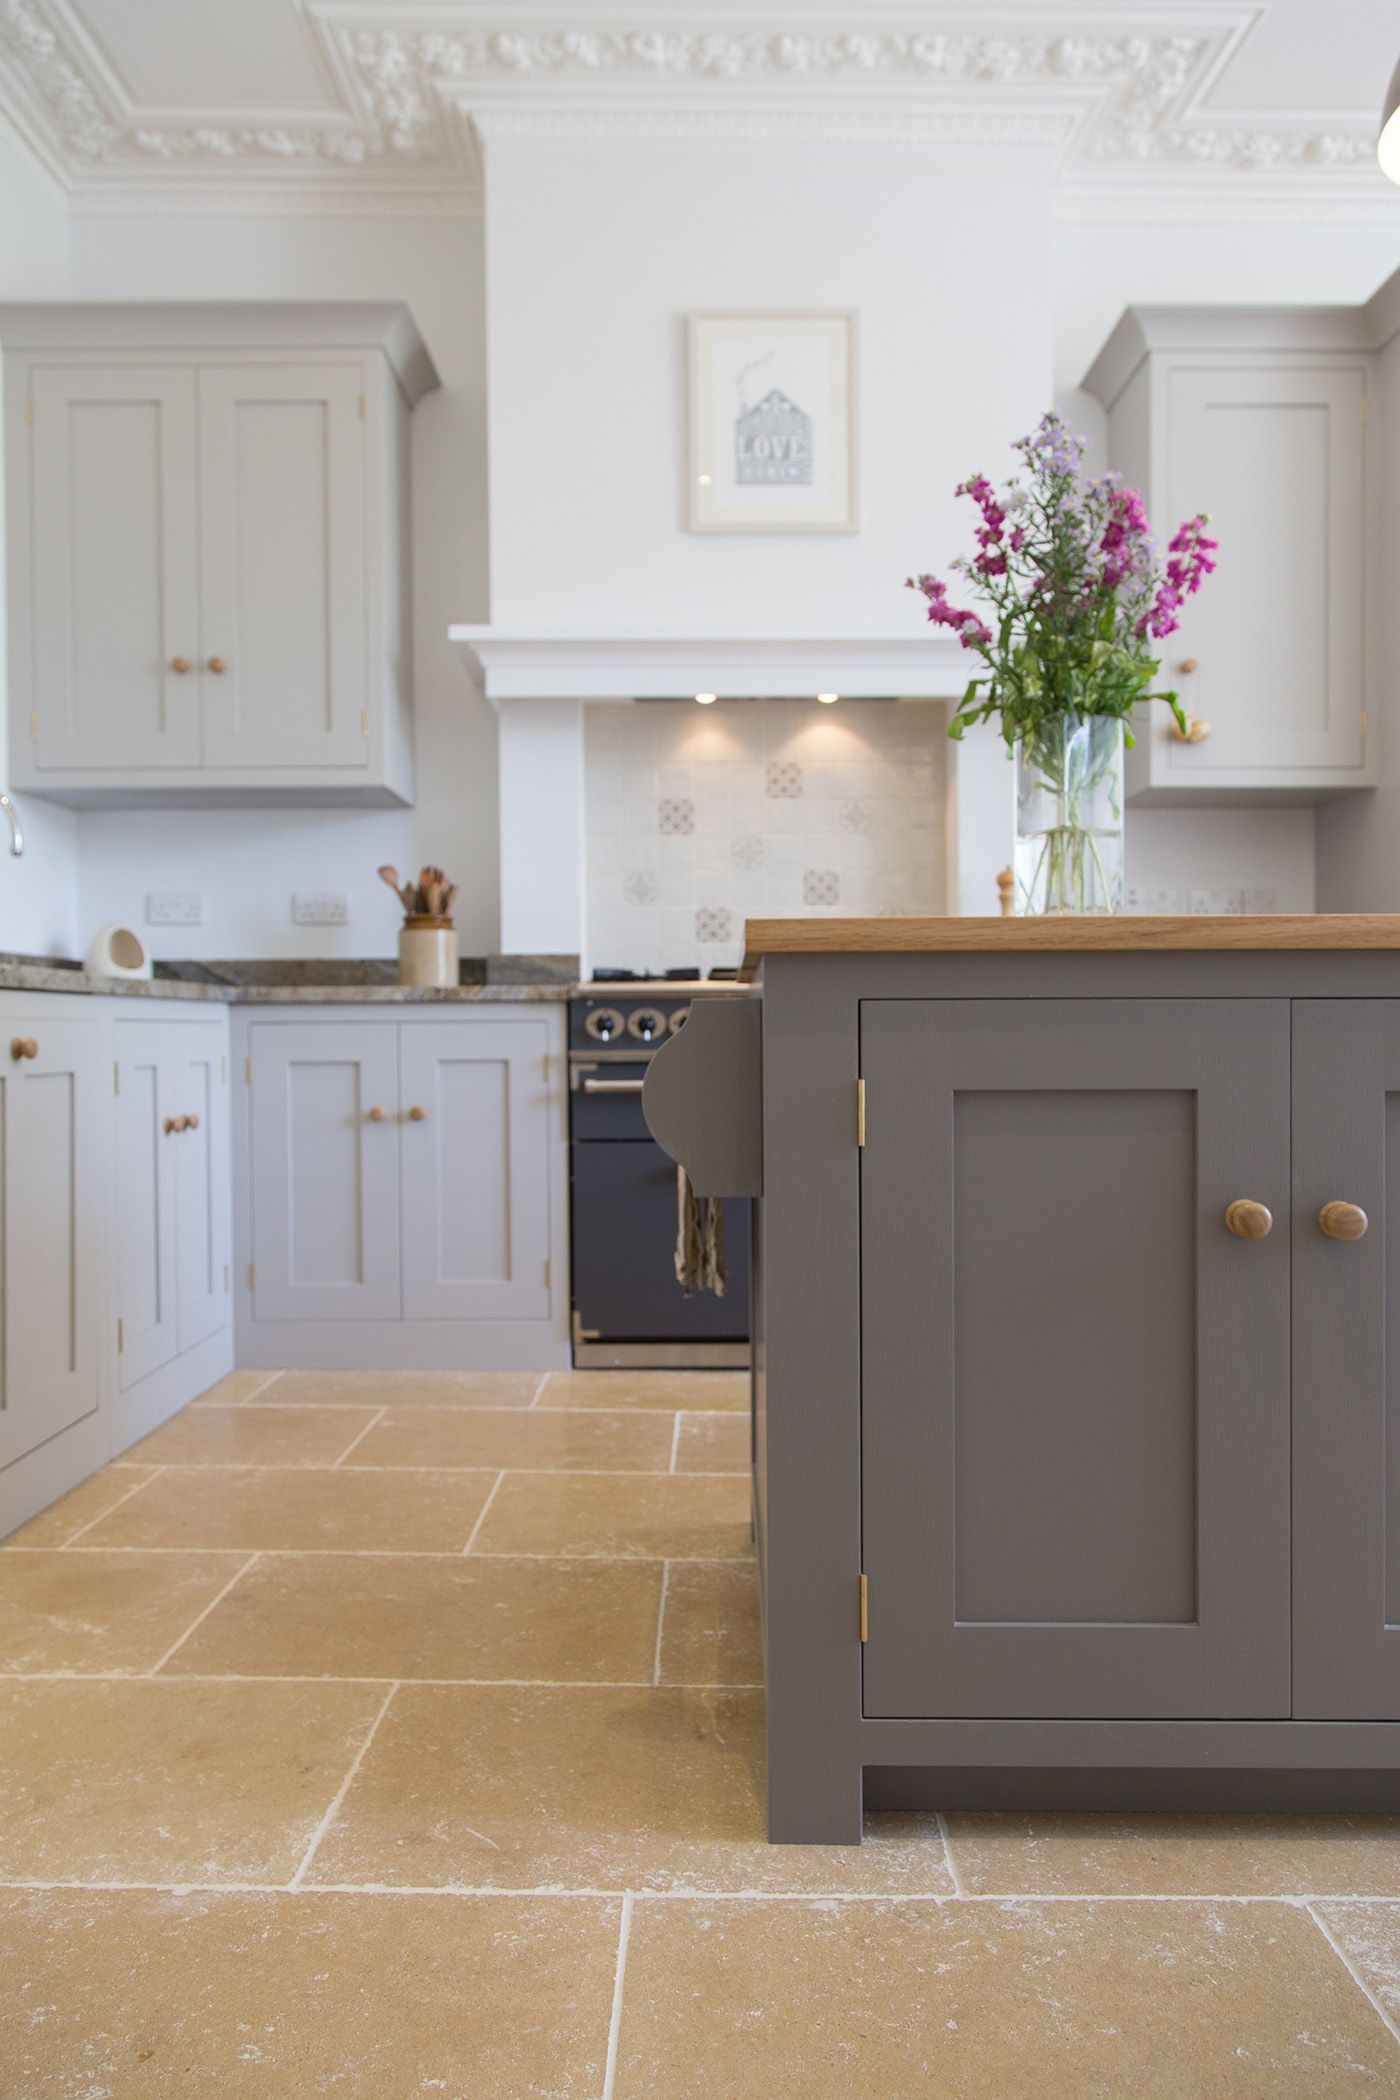 Redland Town House Kitchen Pinterest Purbeck Stone Stone And - Stone color kitchen cabinets